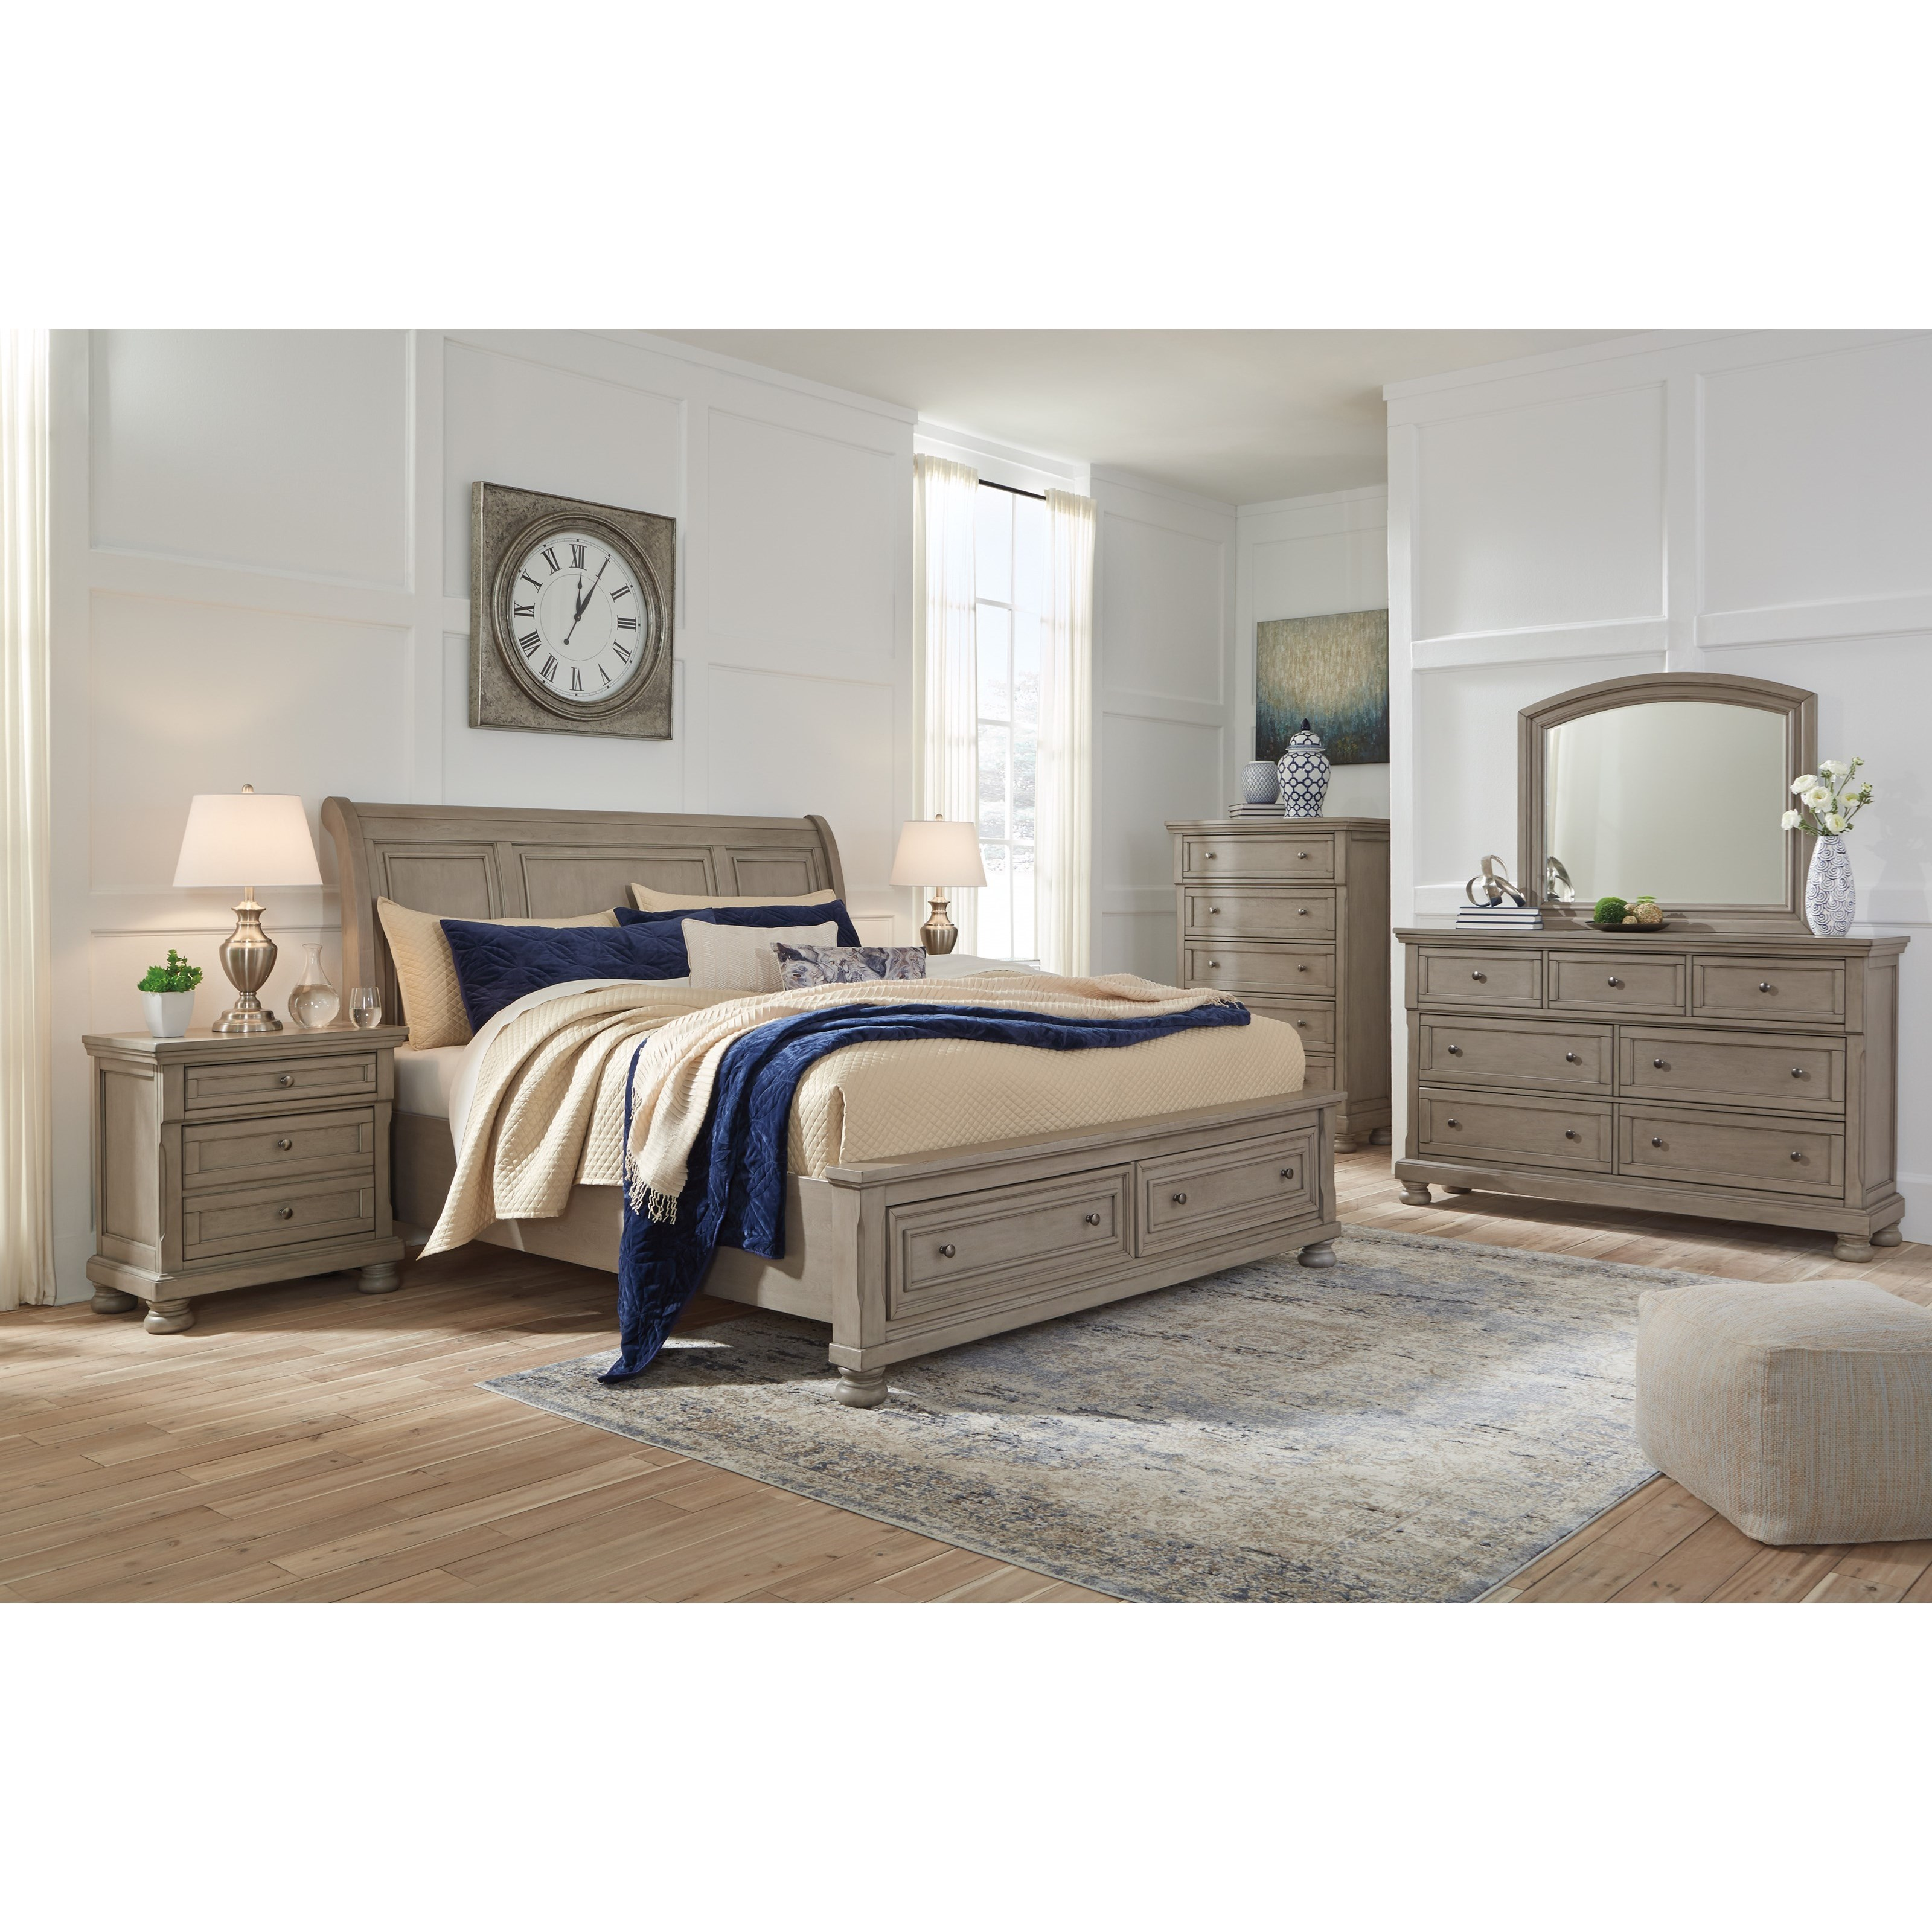 Lettner King Bedroom Group by Signature Design by Ashley at Sparks HomeStore